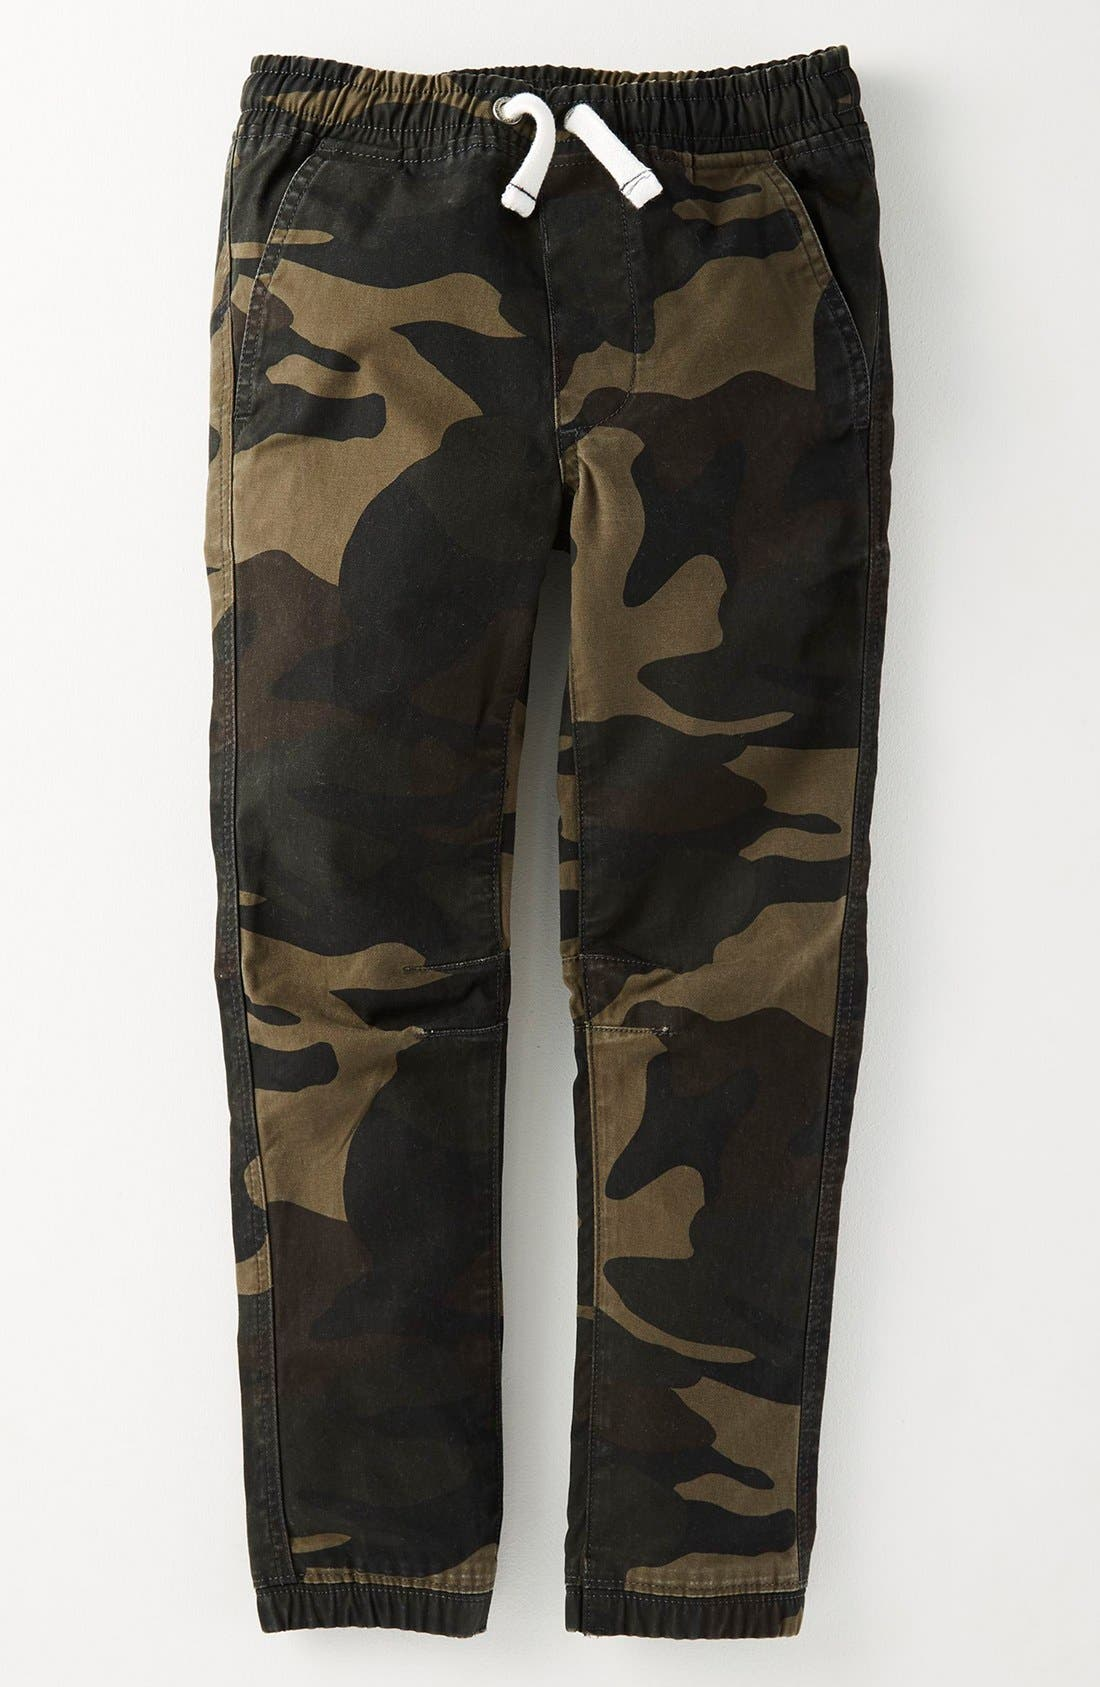 Alternate Image 1 Selected - Mini Boden Chino Jogger Pants (Toddler Boys, Little Boys & Big Boys)